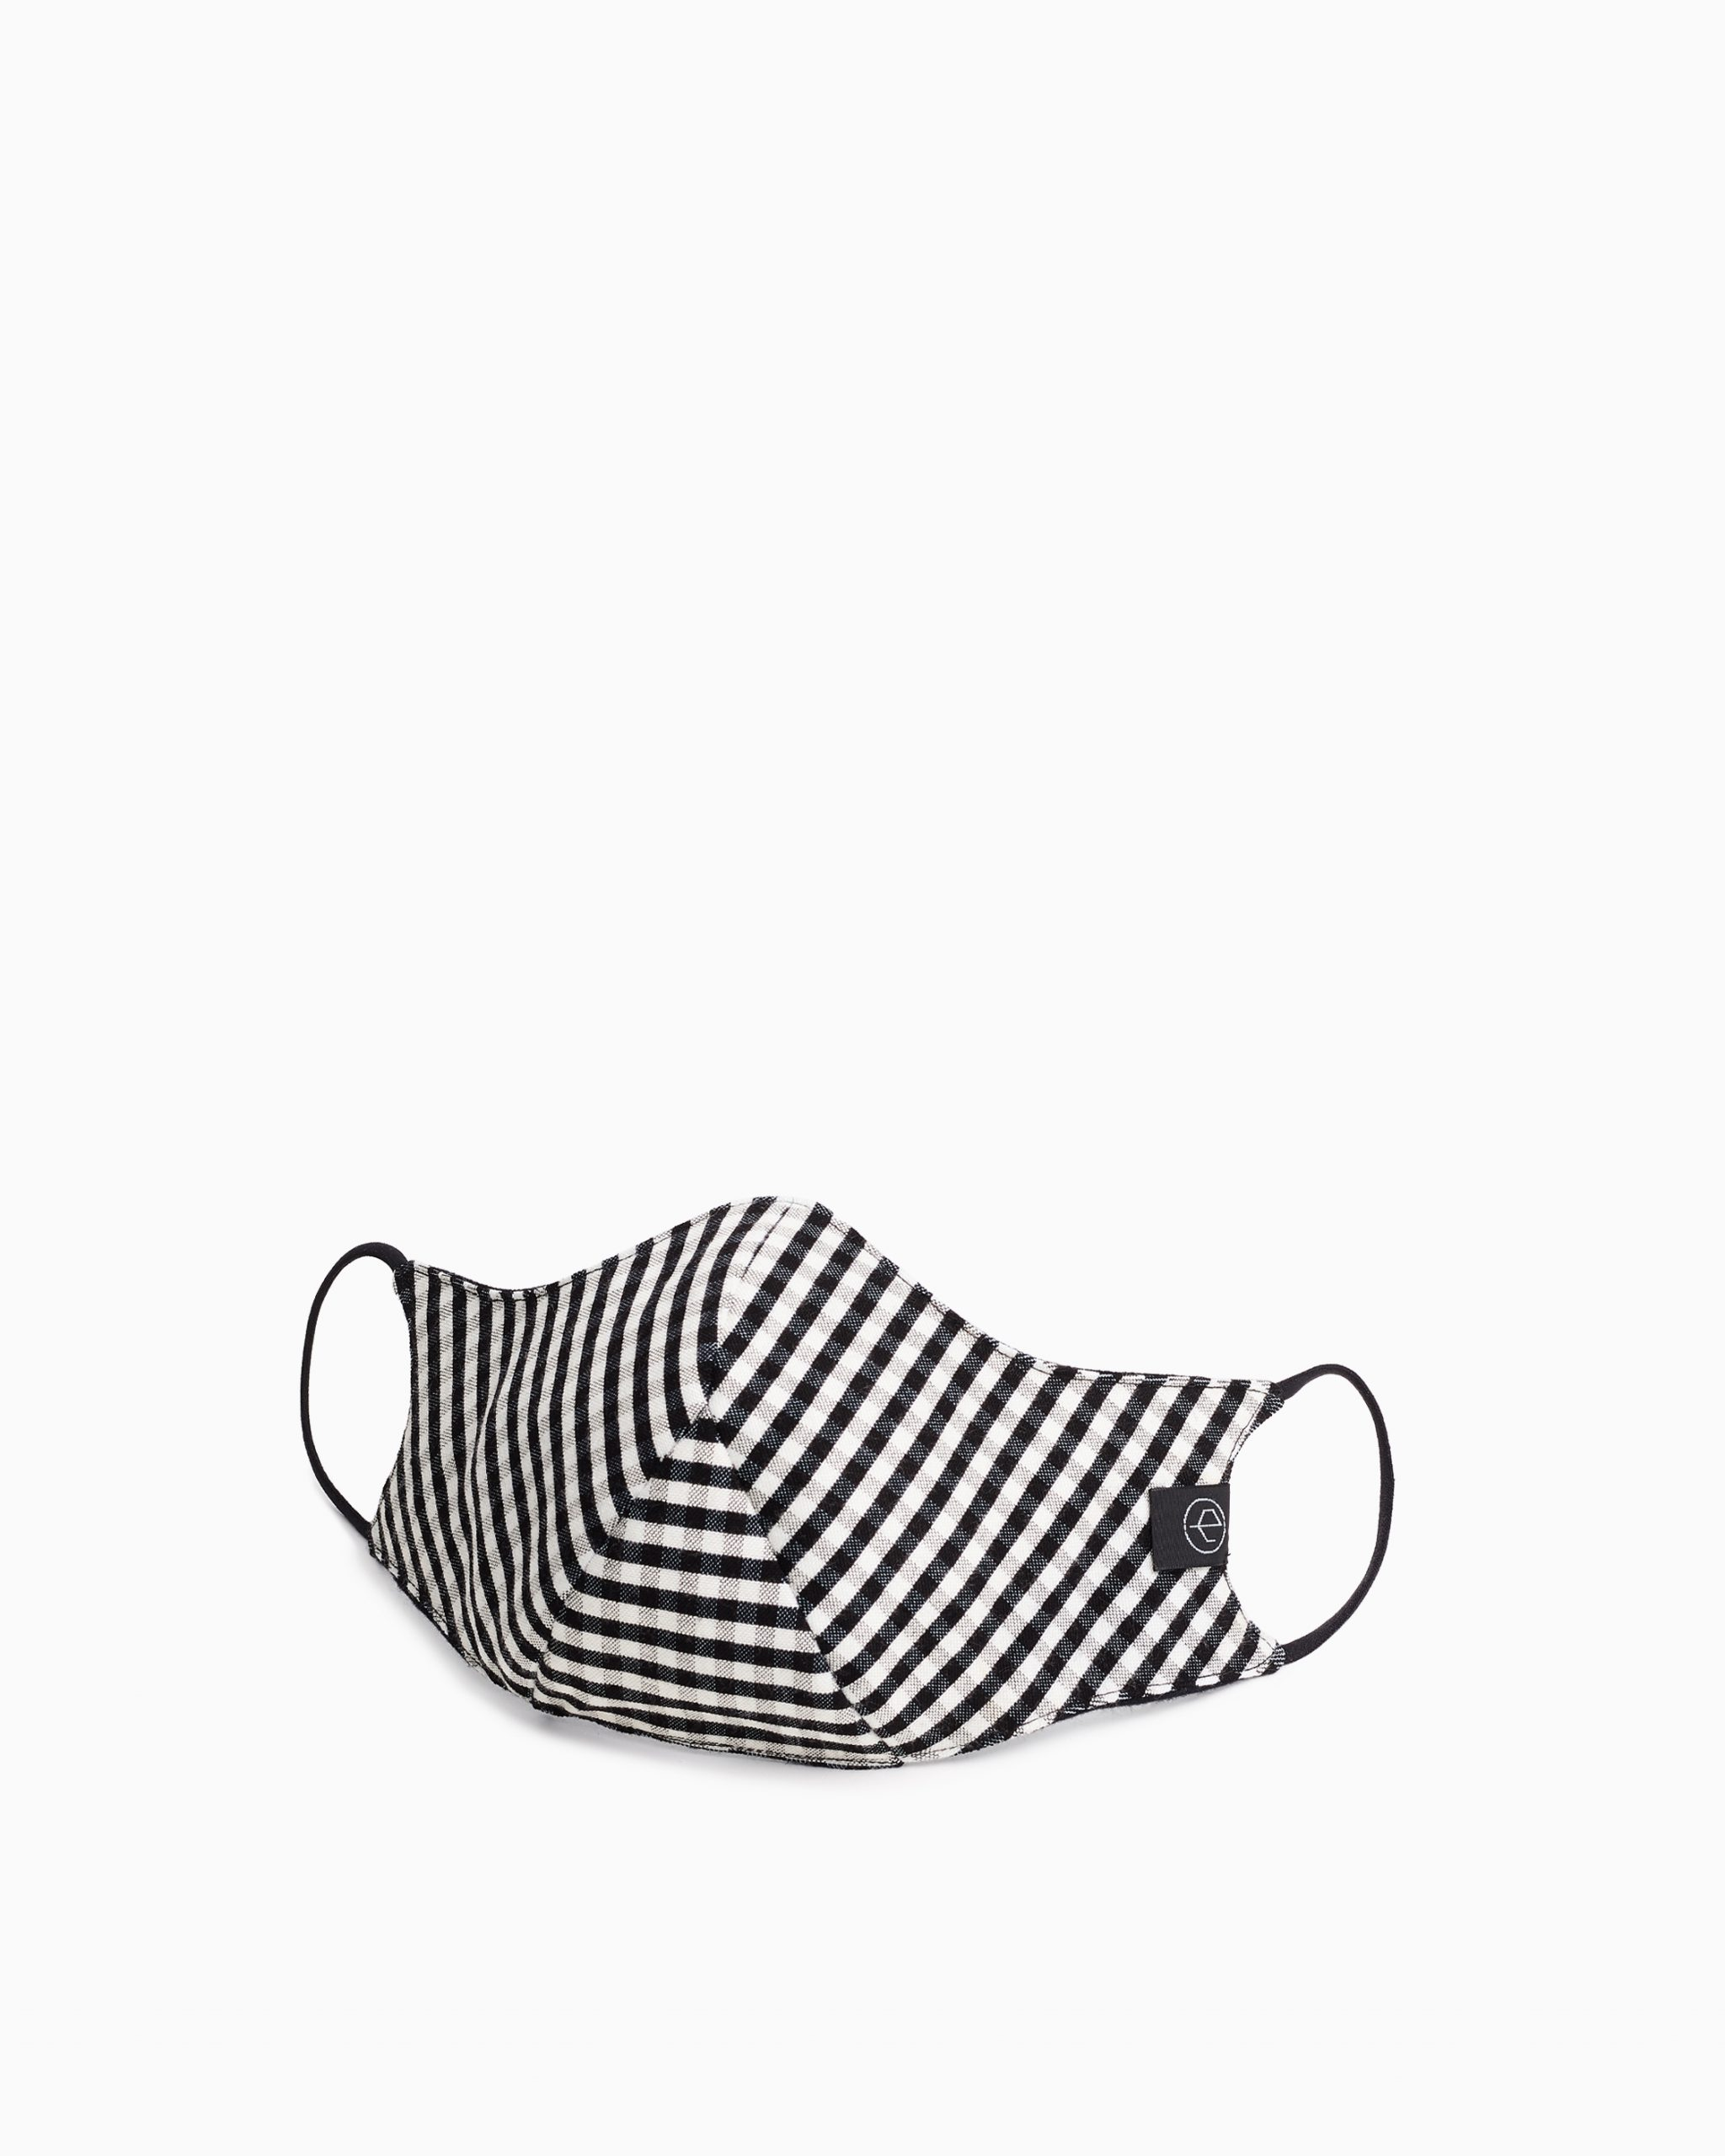 rag & bone Launches Limited-Edition Masks For COVID-19 Relief